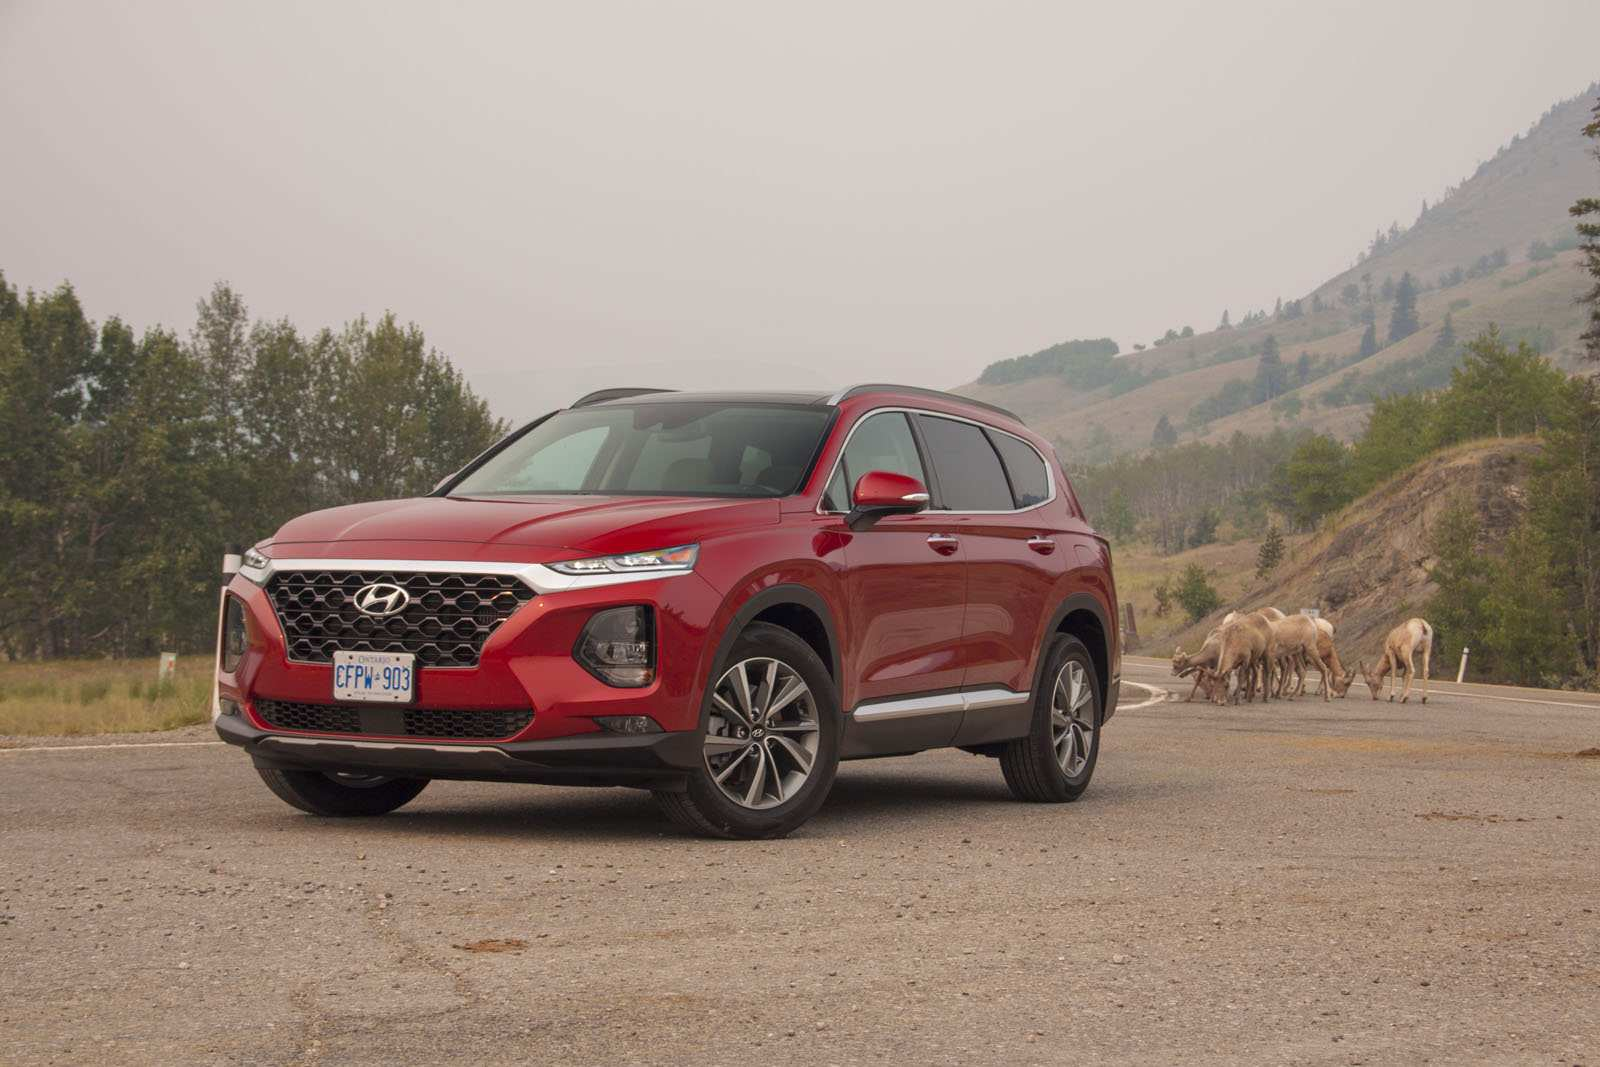 72 All New The Santa Fe Kia 2019 Rumors Performance